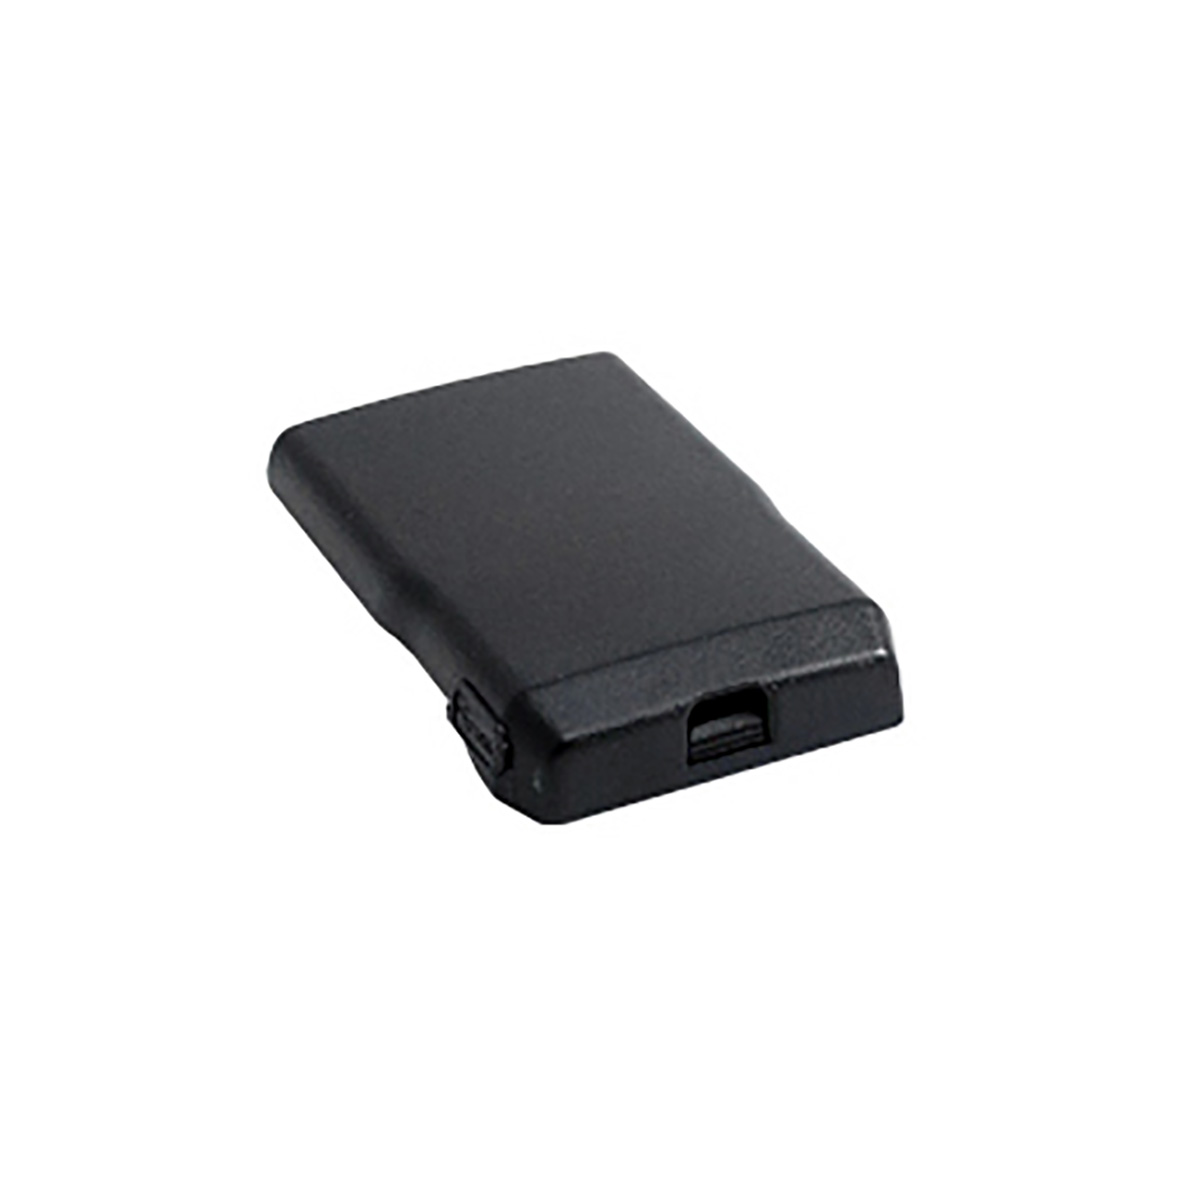 BCA_BCLink_two-way_radio_battery_black_1200x1200.jpg